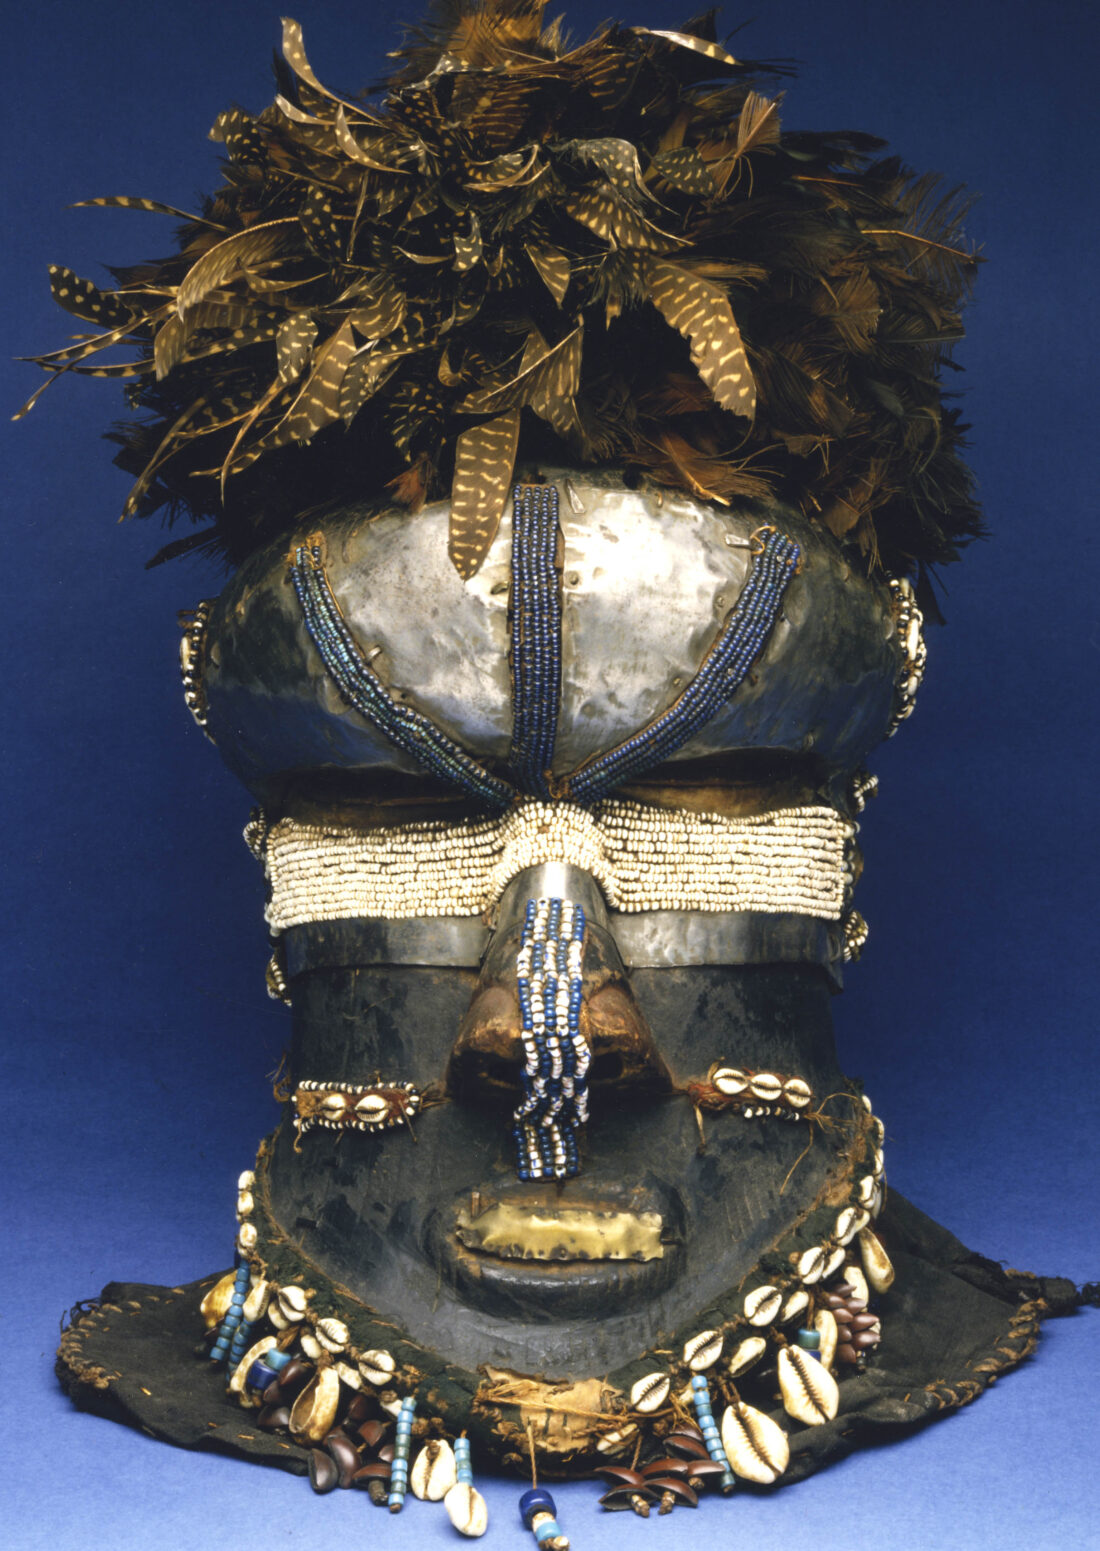 Mask embroidered with pearls and shells and feathers on top